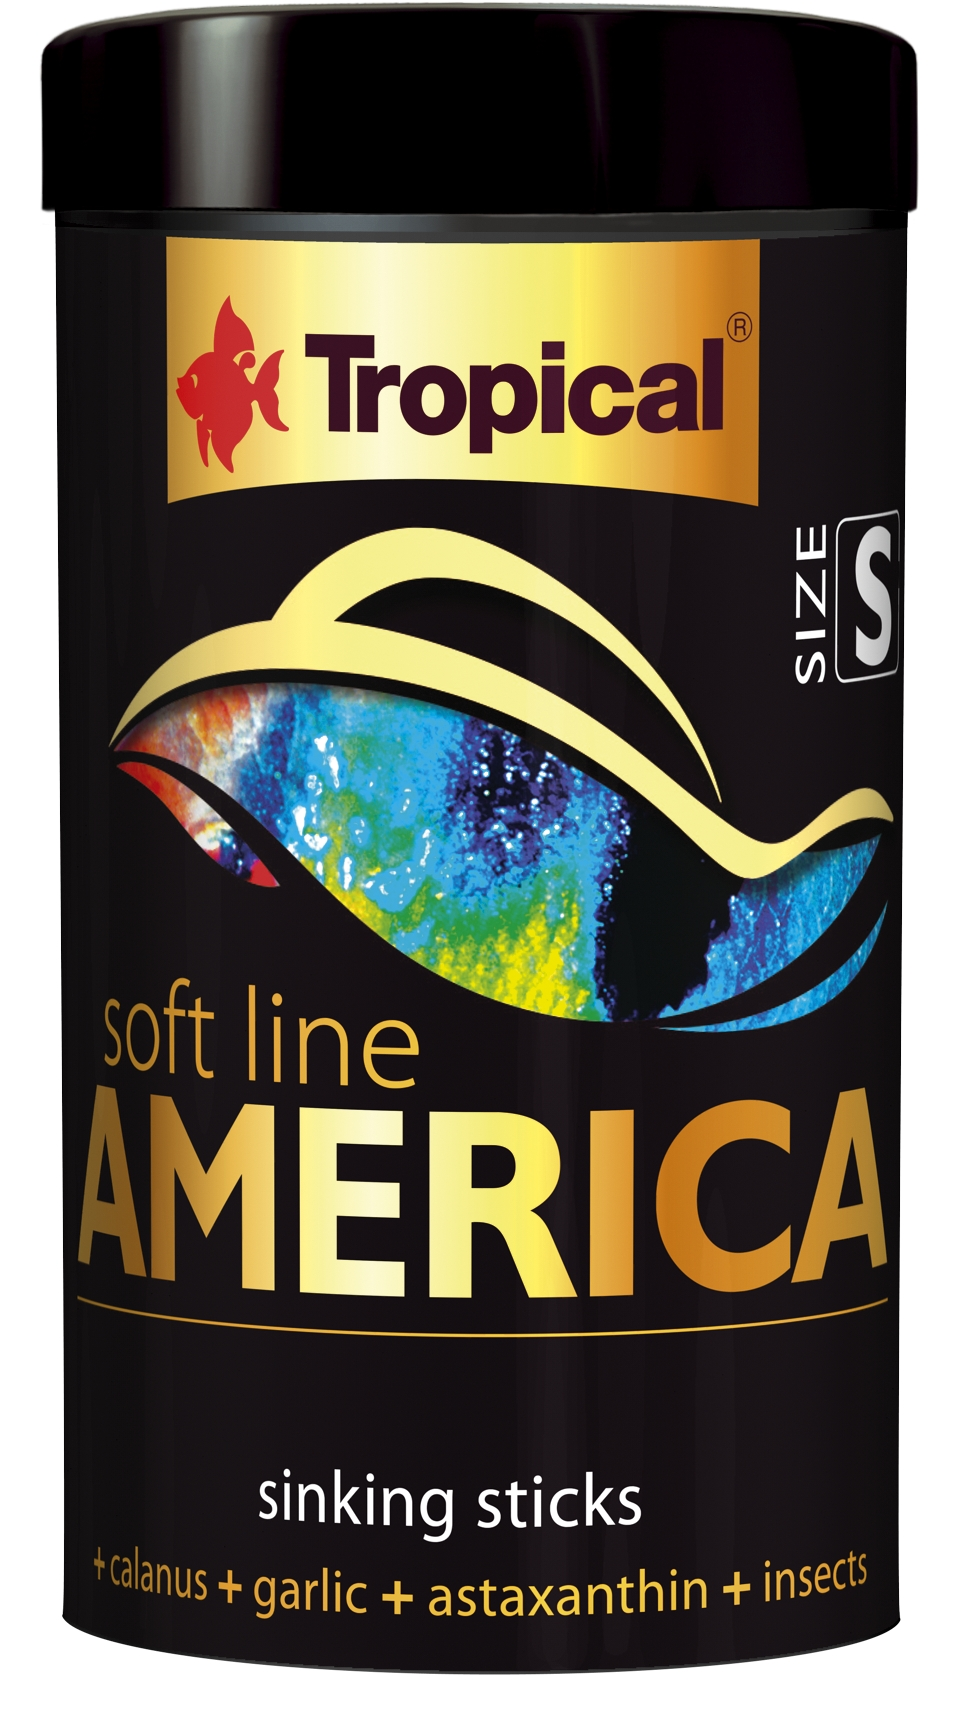 Tropical Soft Line America Size S - 100ml/56g